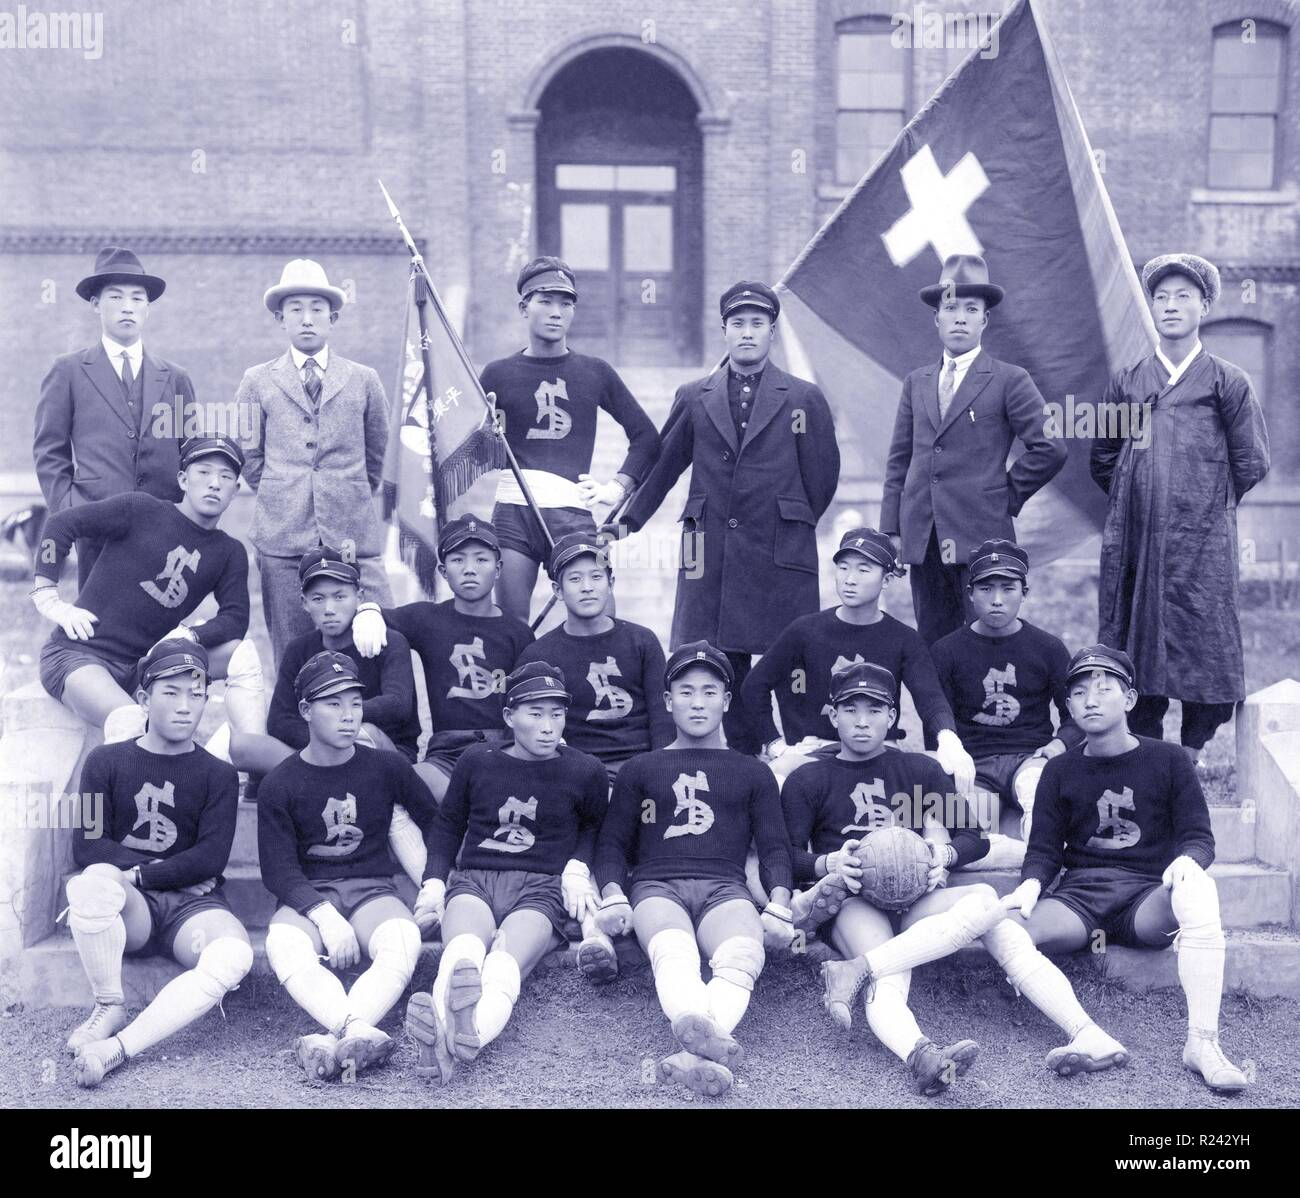 Soongsil Christian AcademyaEos Champion Football Team. Pyongyang, Korea 1925 - Stock Image